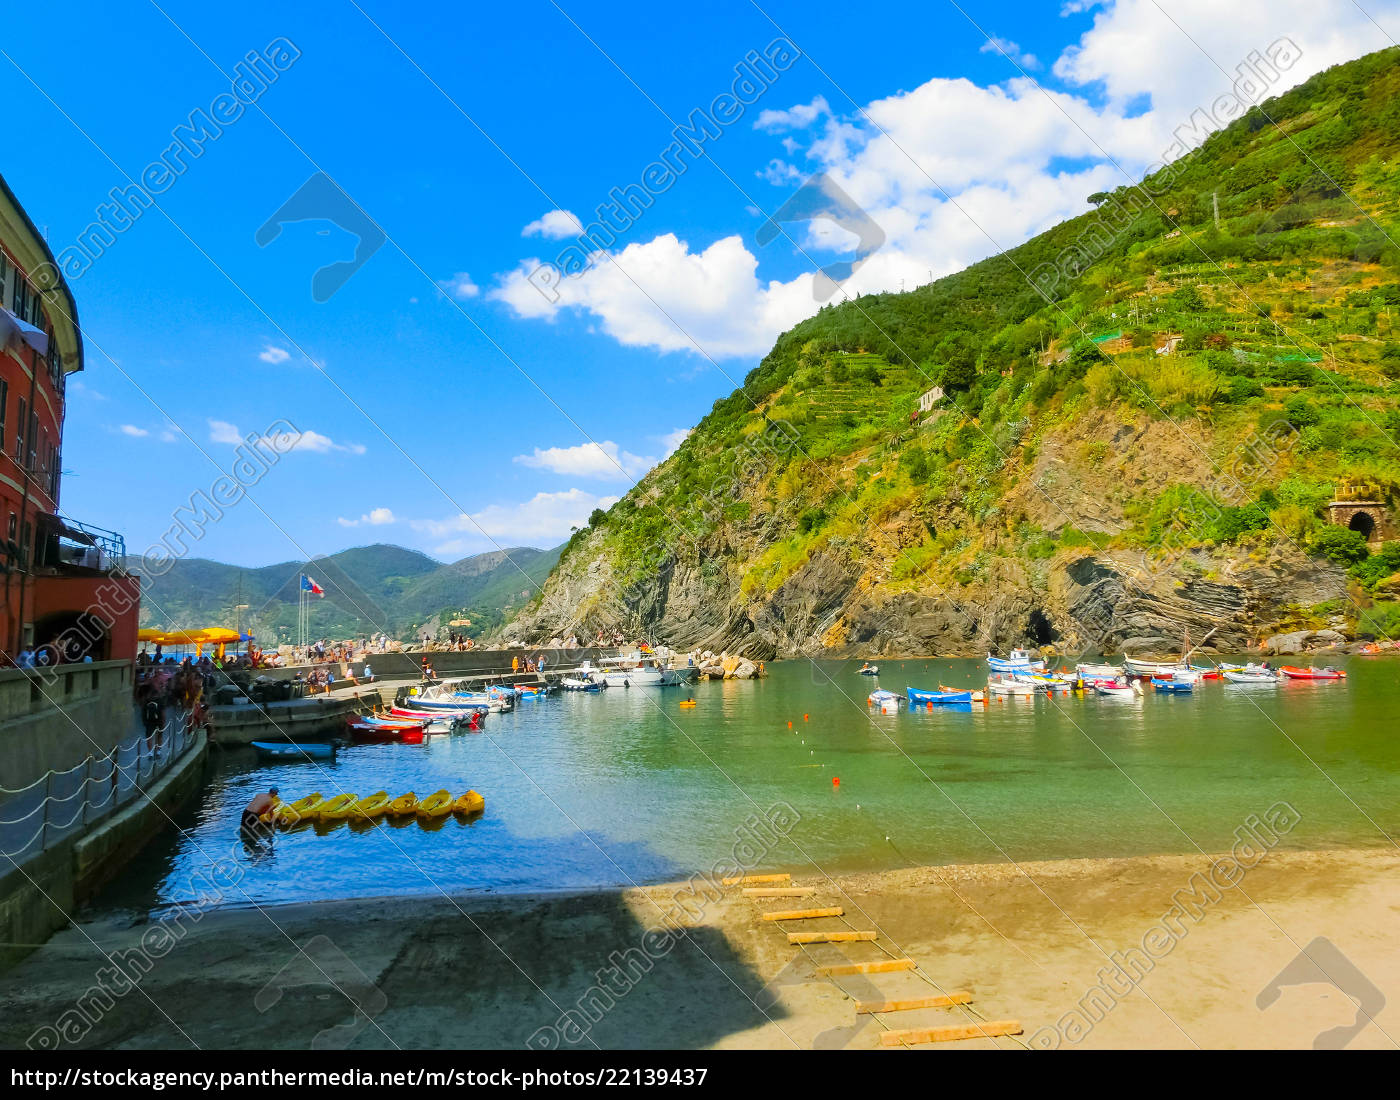 vernazza, , italy, -, september, 09, , 2015: - 22139437